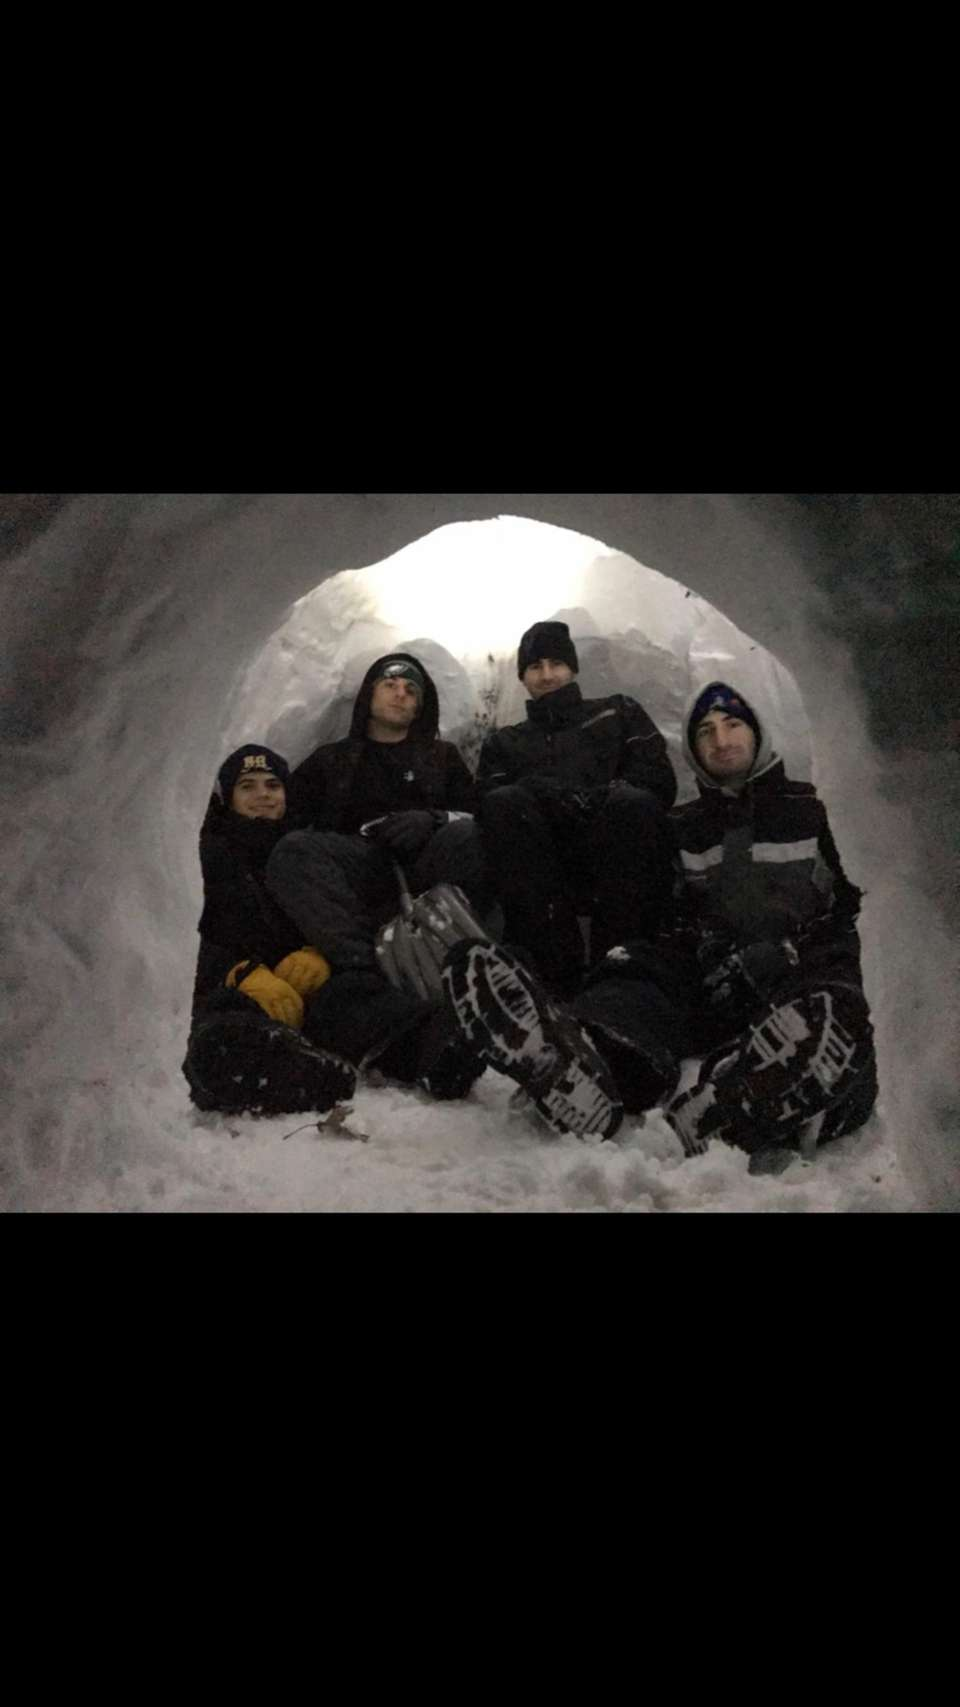 The snowday called for a record making igloo.